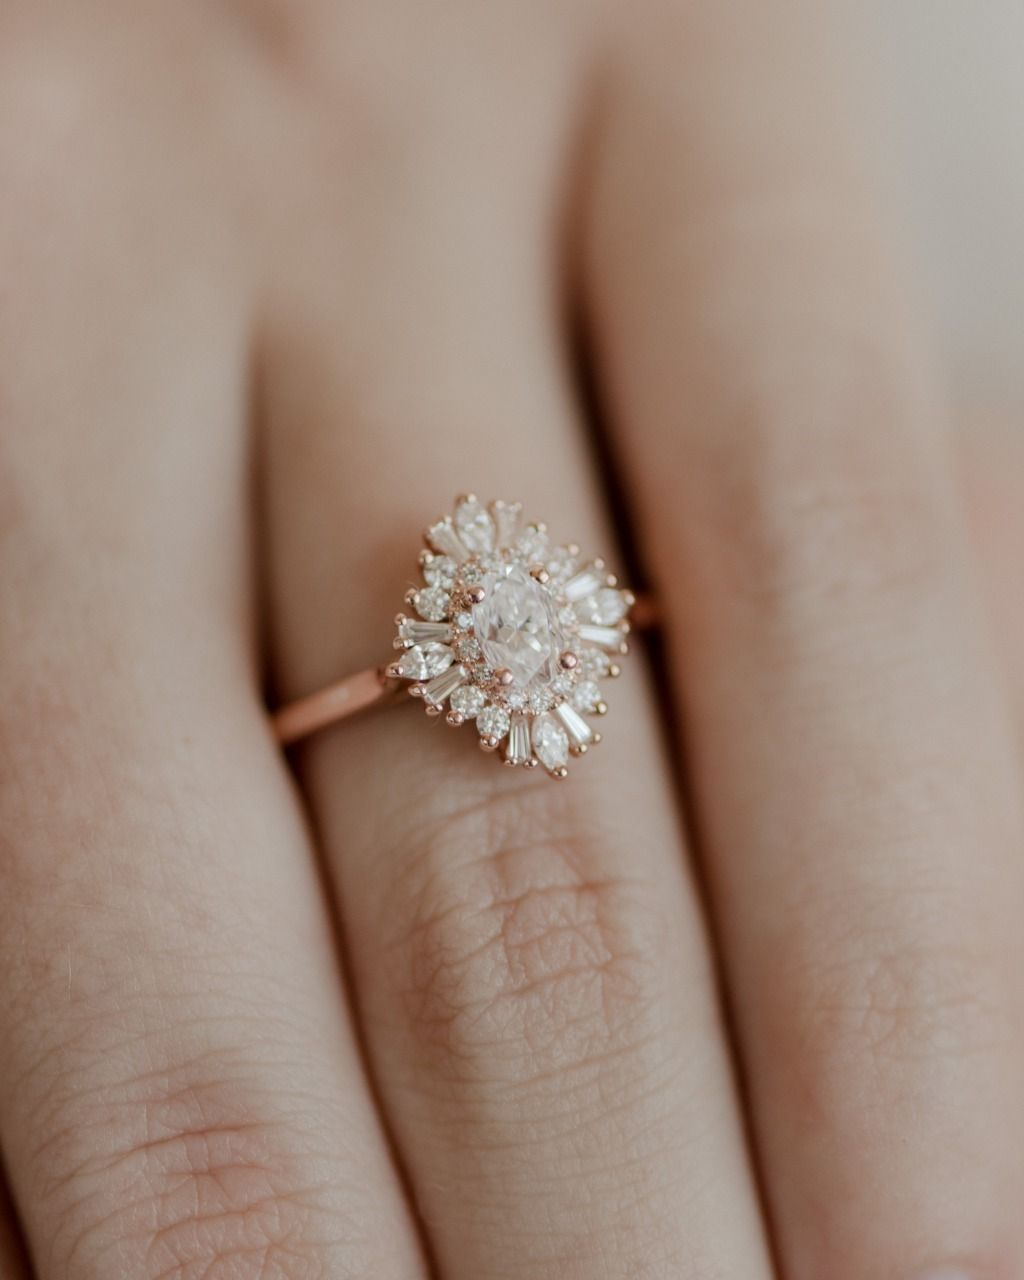 Unique vintage style engagement ring from Evorden. WCvendor